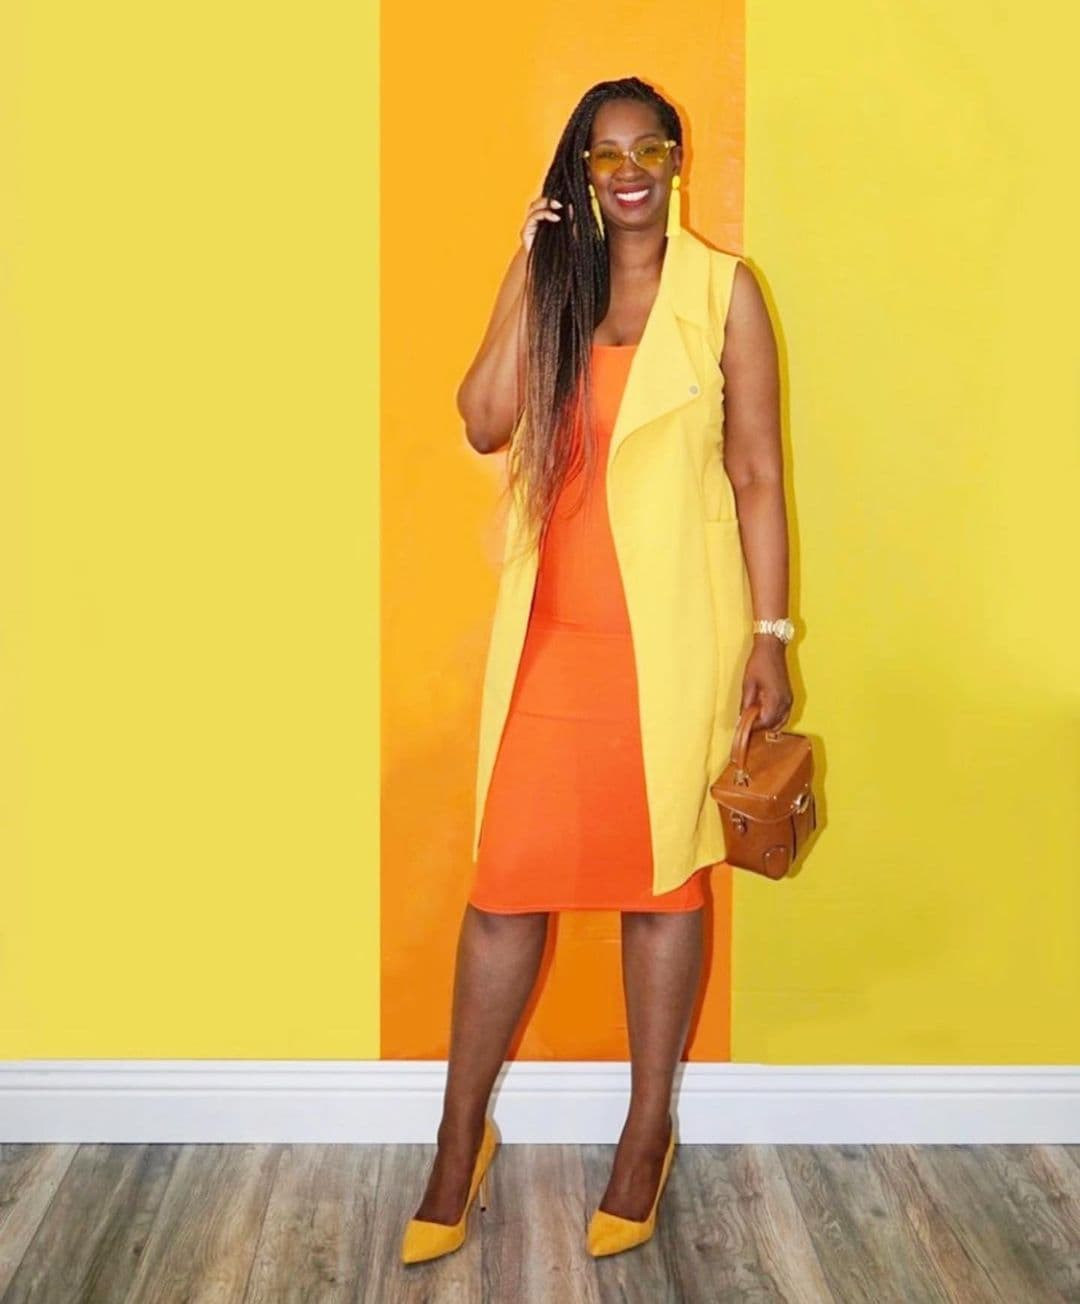 Tanasha wears a bright outfit of yellow and orange   40plusstyle.com